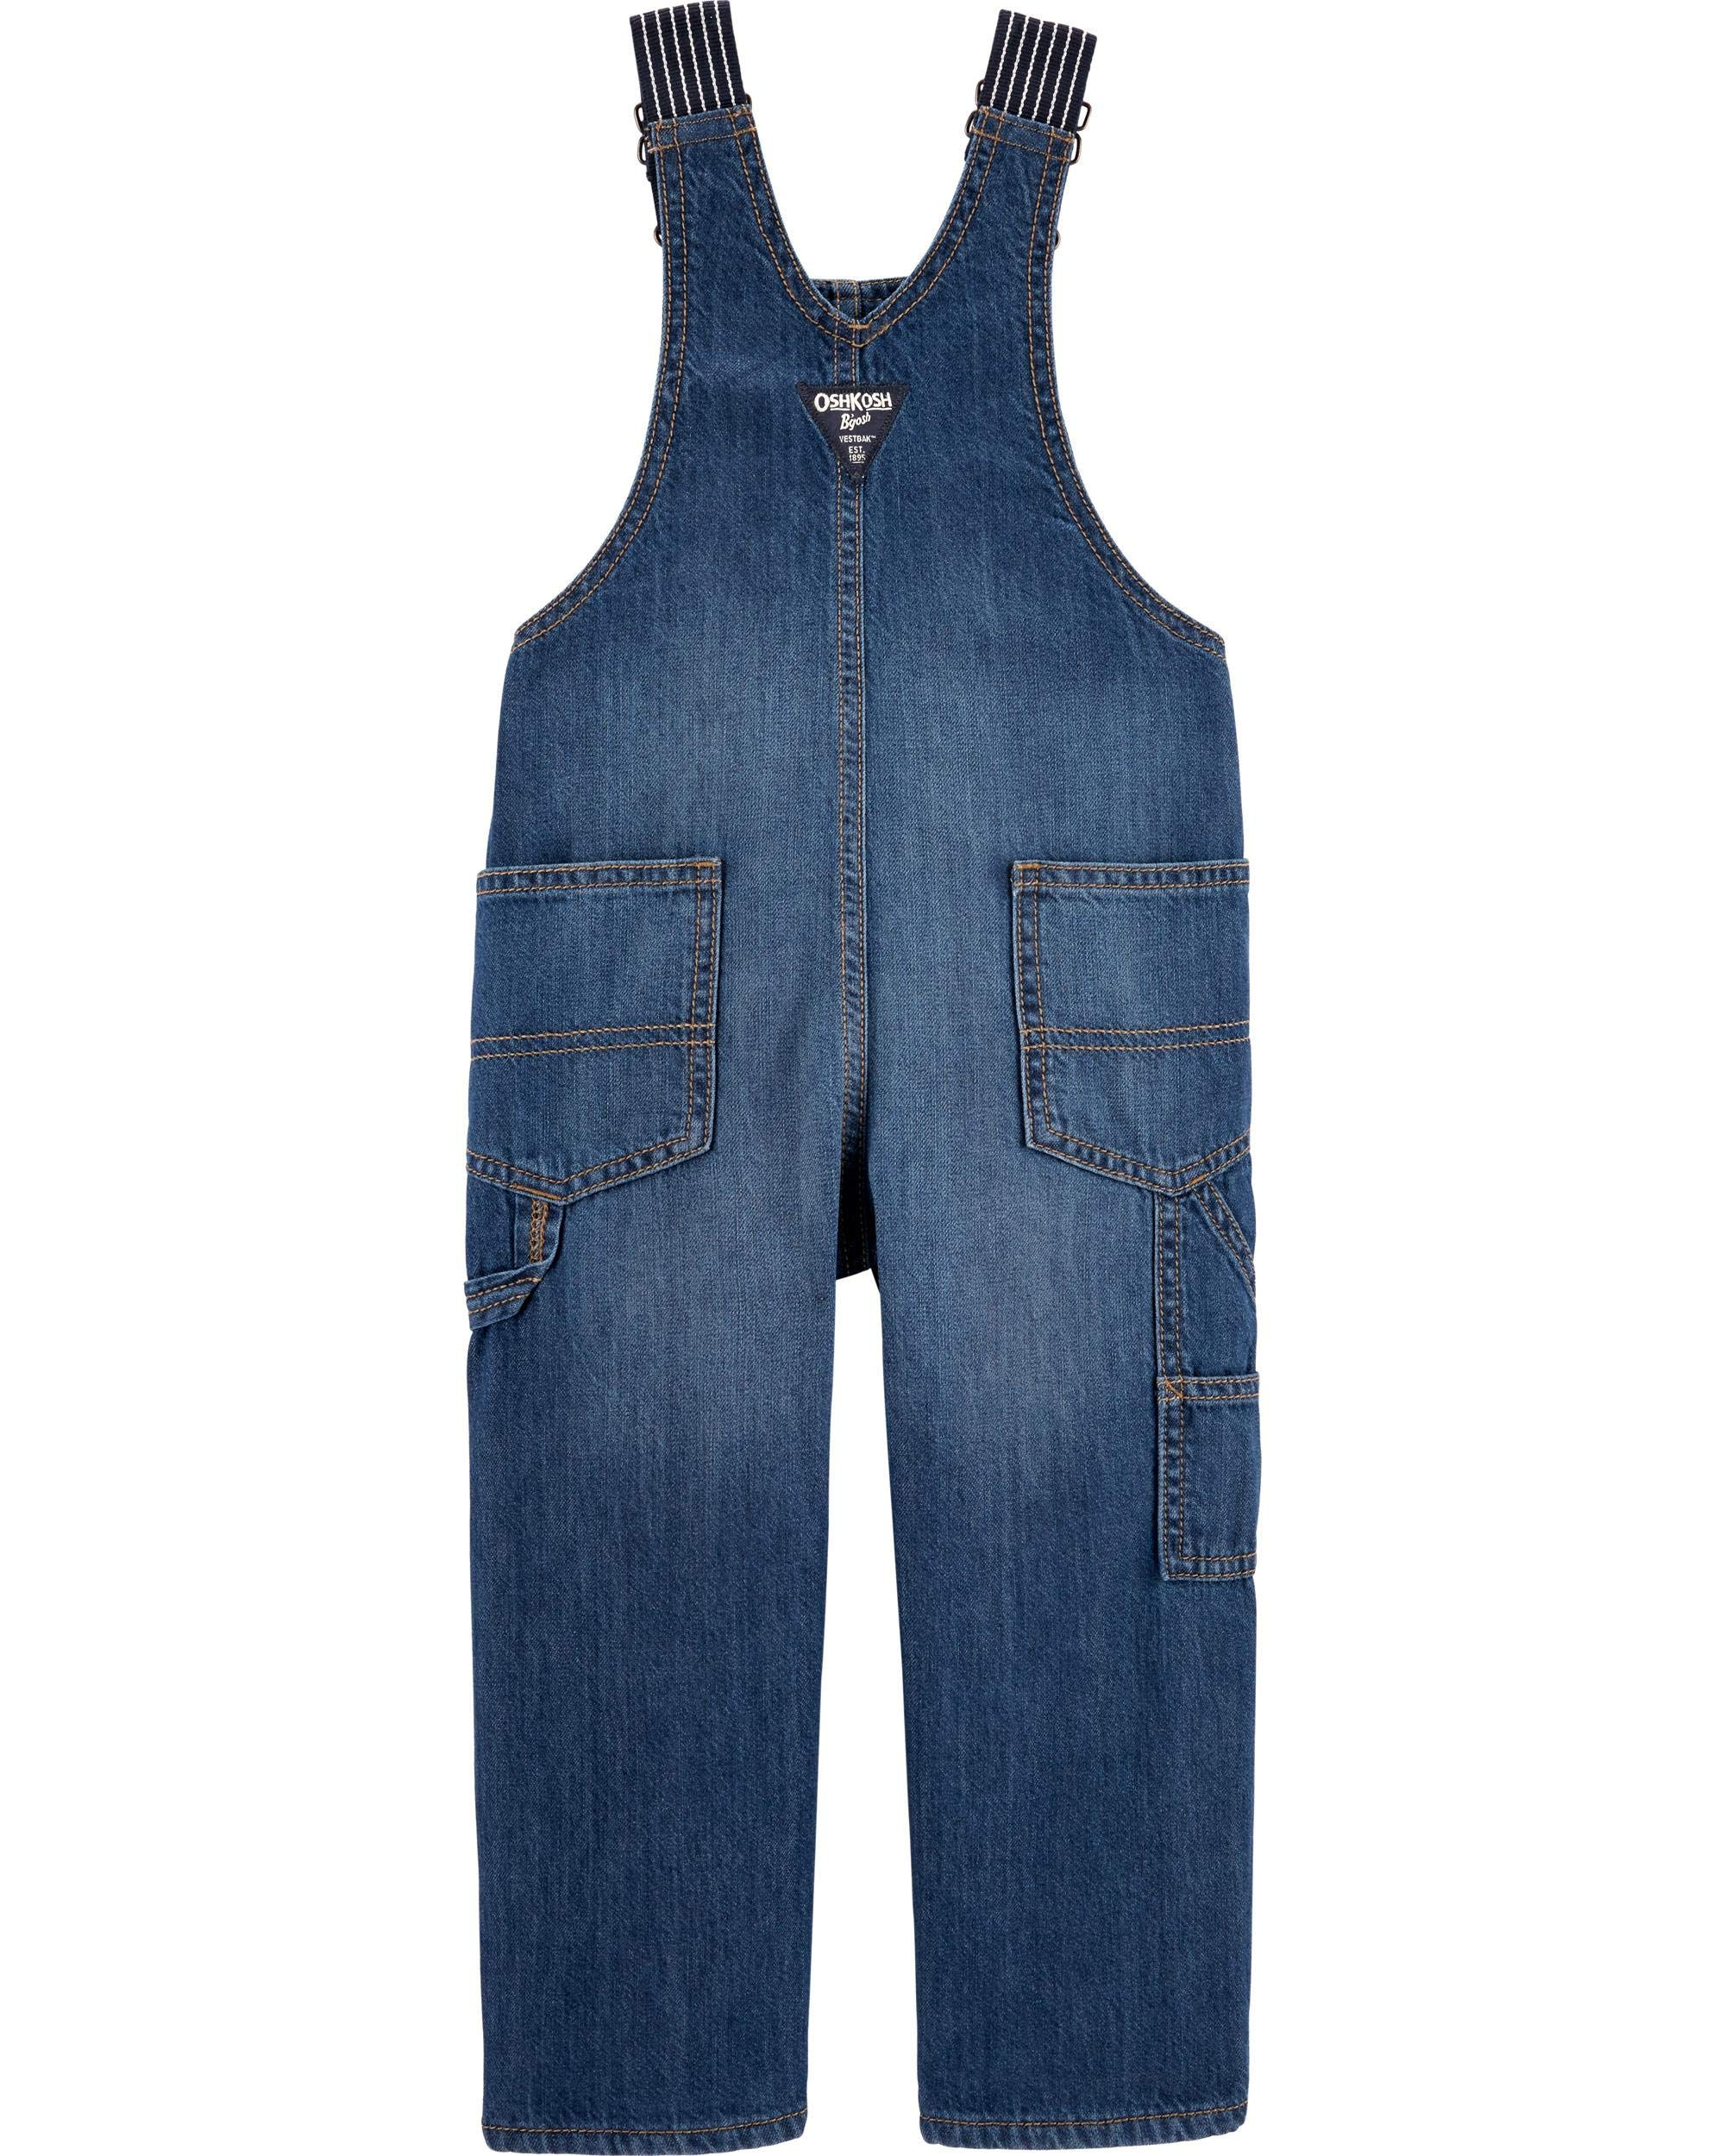 2T Deep Navy Osh Kosh Boys Toddler Worlds Best Overalls